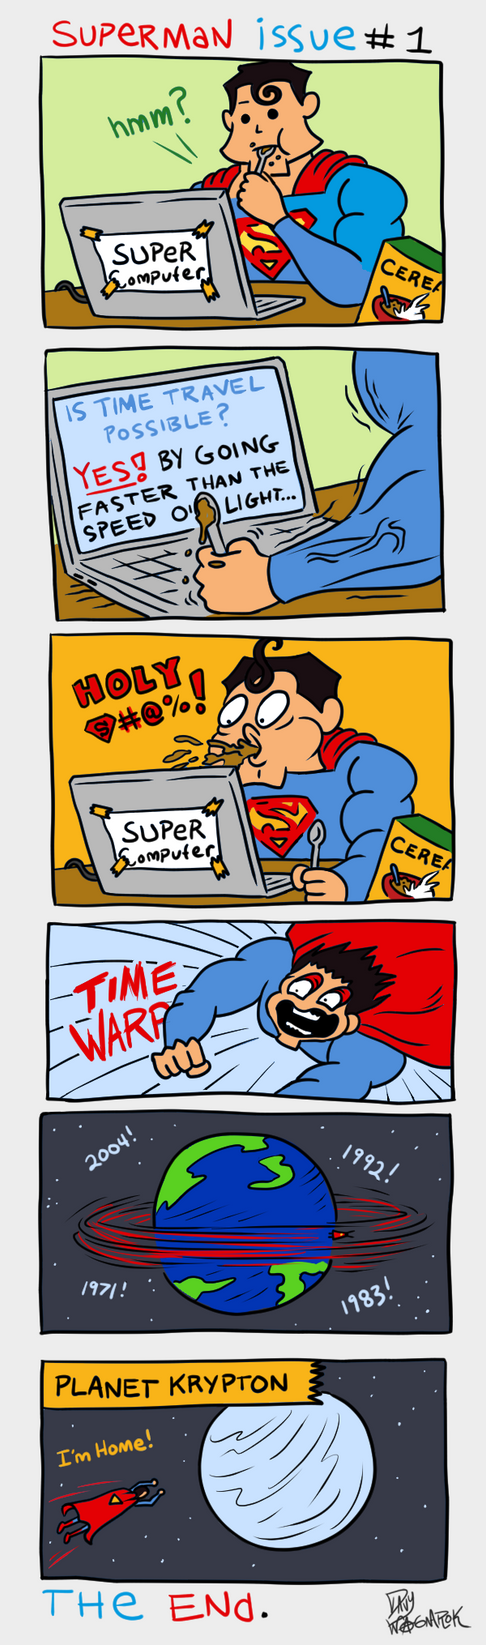 Superman Returns by DavyWagnarok